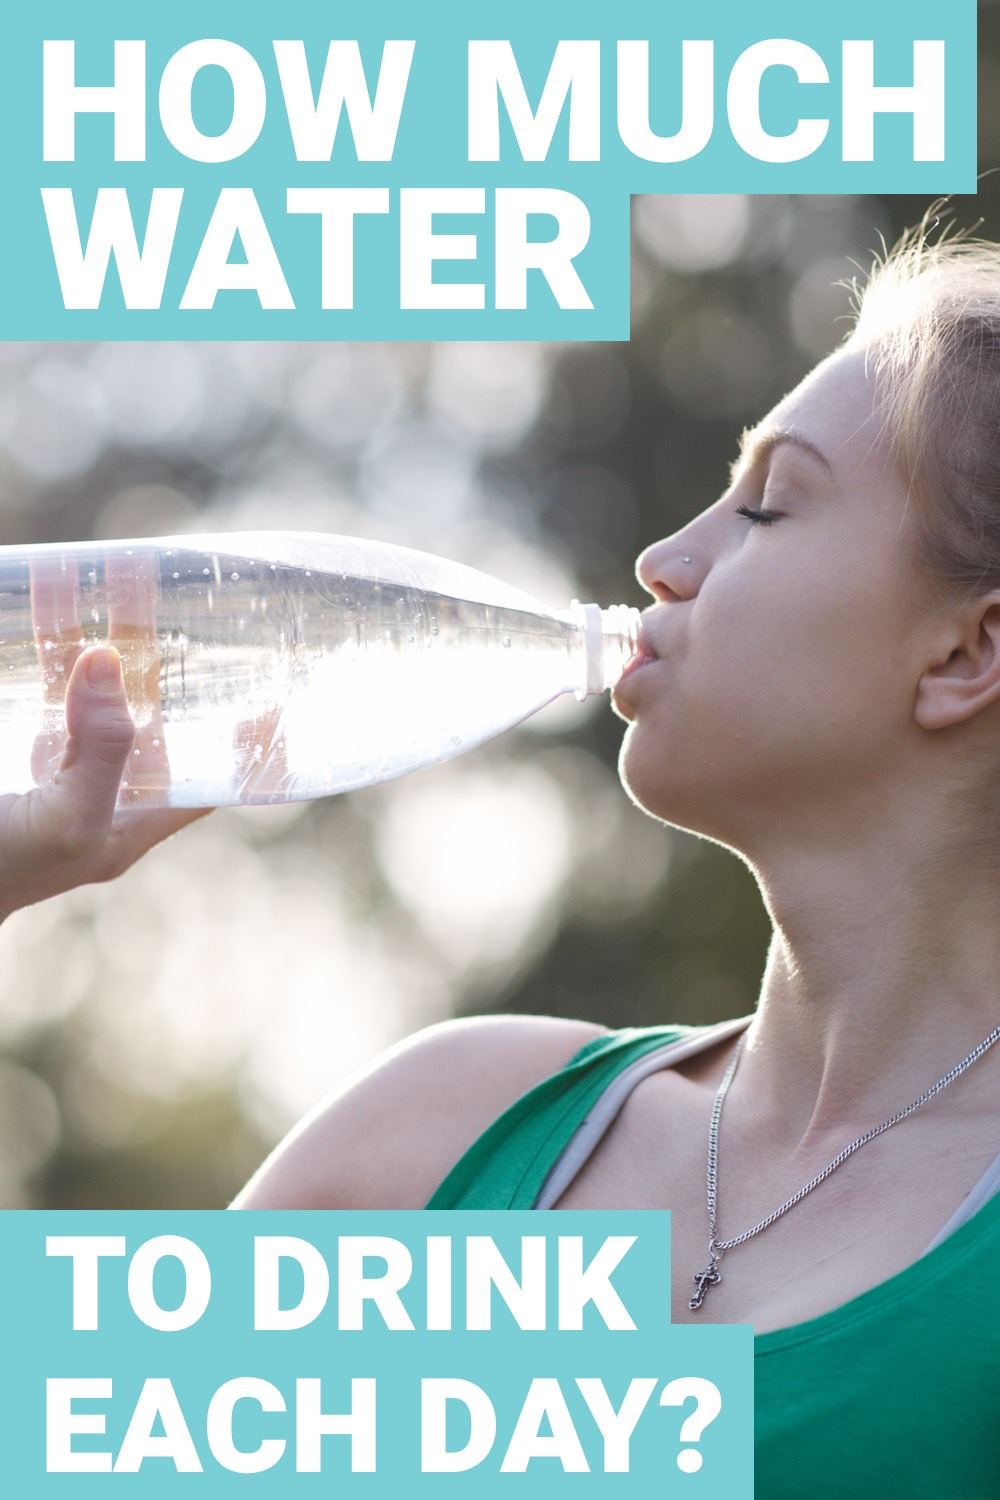 Everyone needs to stay hydrated. How much water should you drink per day? Find the answer here.